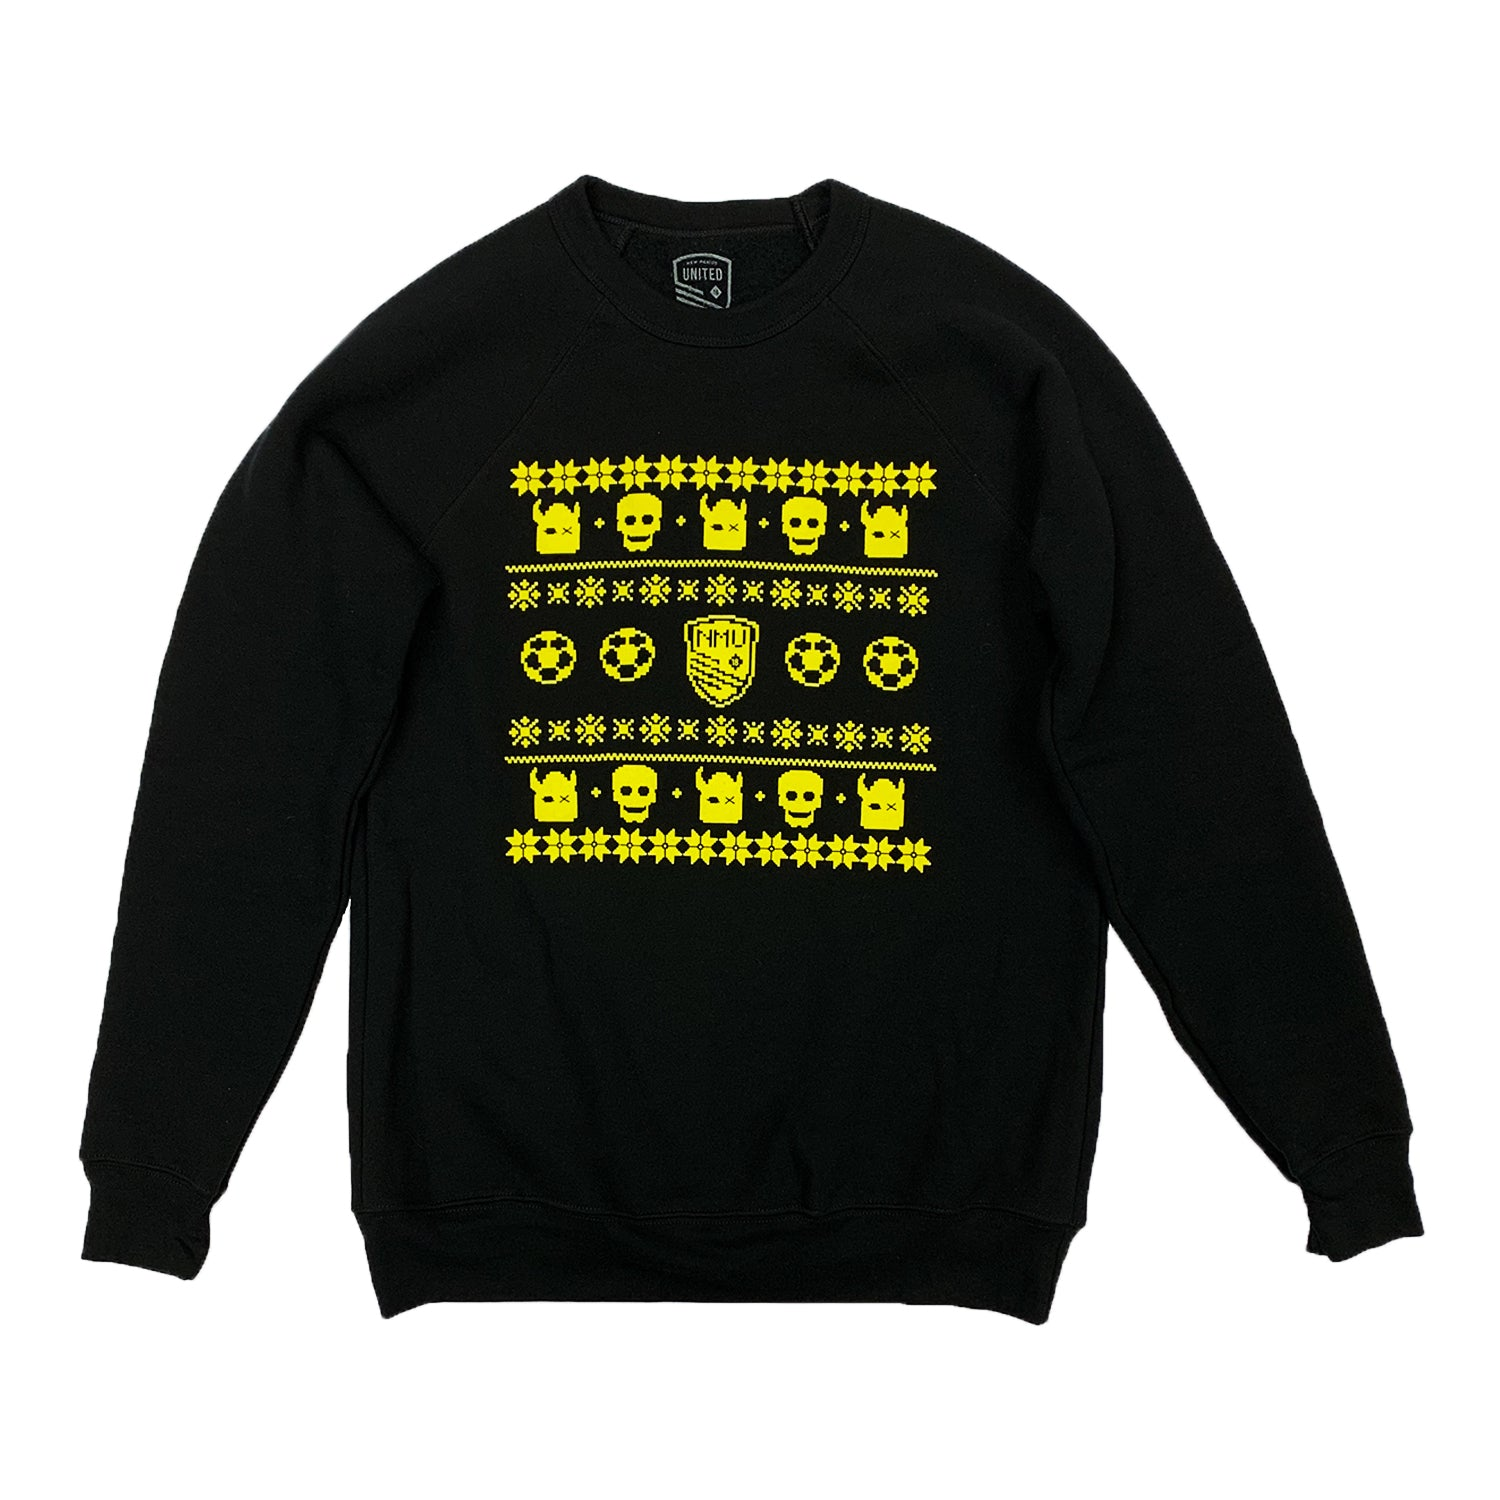 New Mexico United Ugly Holiday Sweatshirt